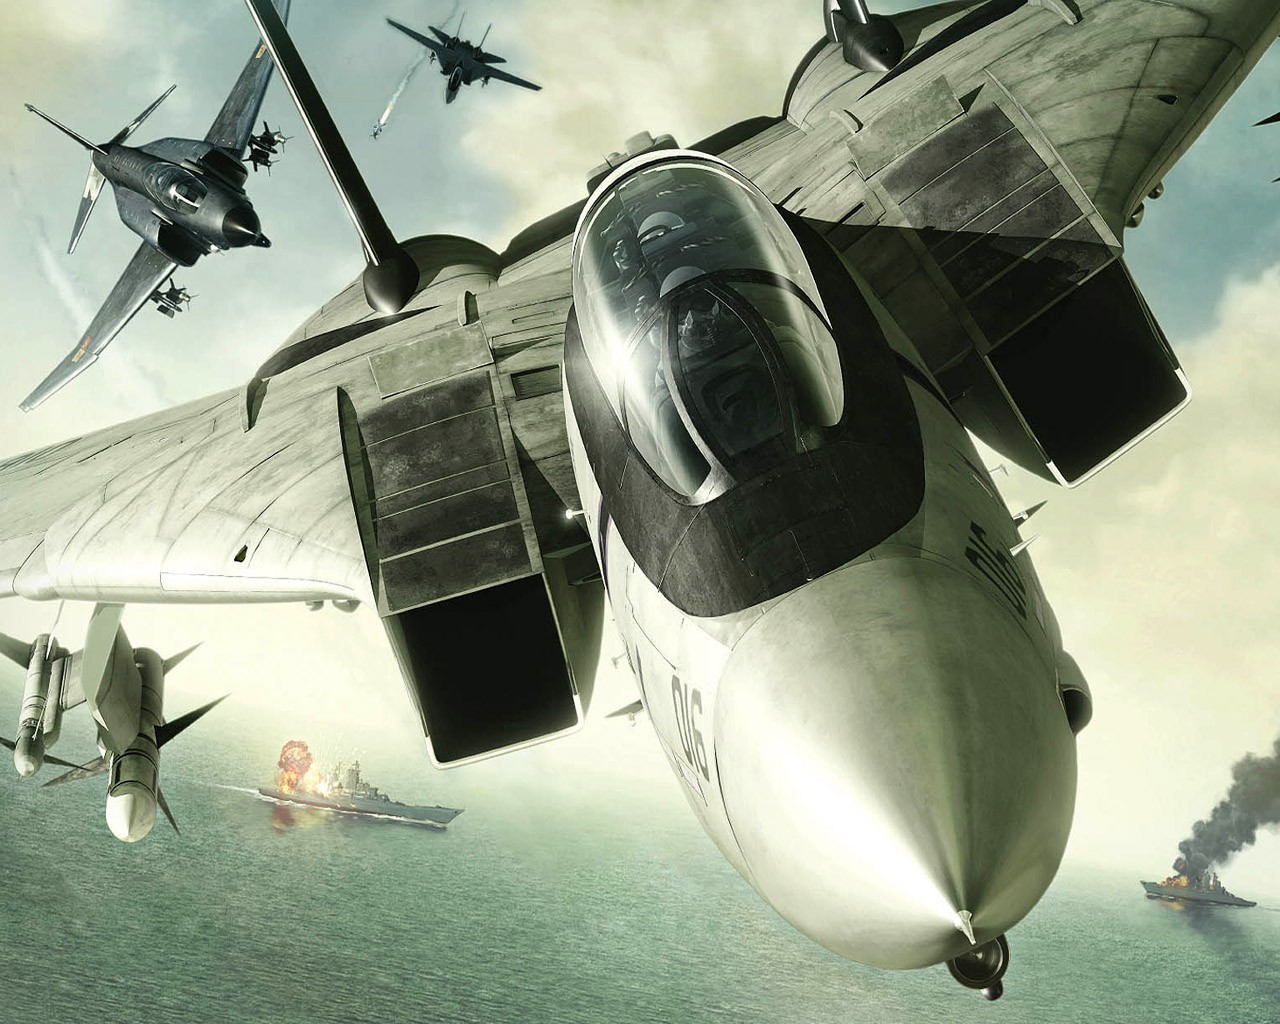 Jet Fighter wallpapers   Jet Fighter stock photos